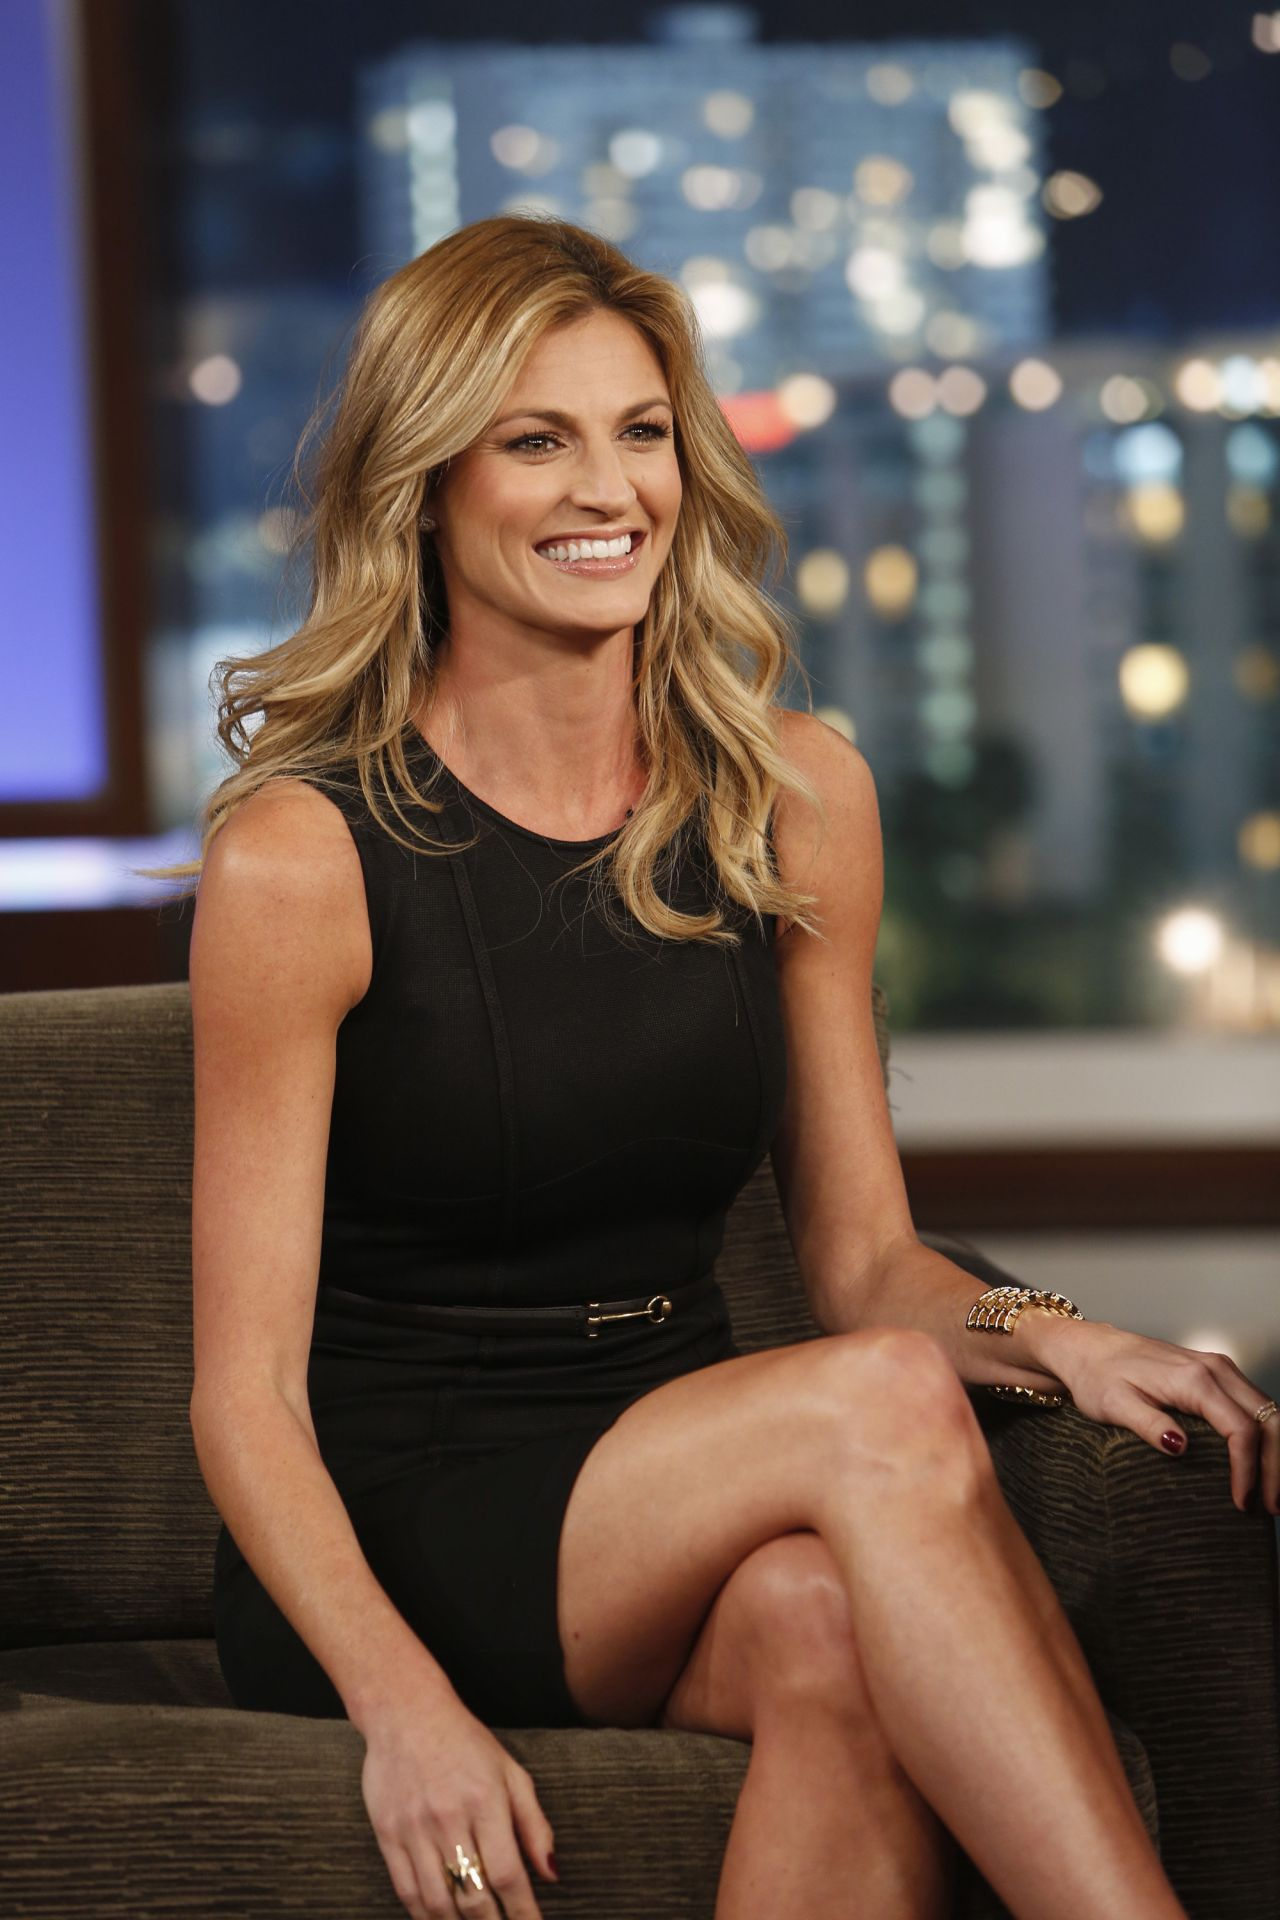 Erin Andrews naked peephole video - Find it here: Erin